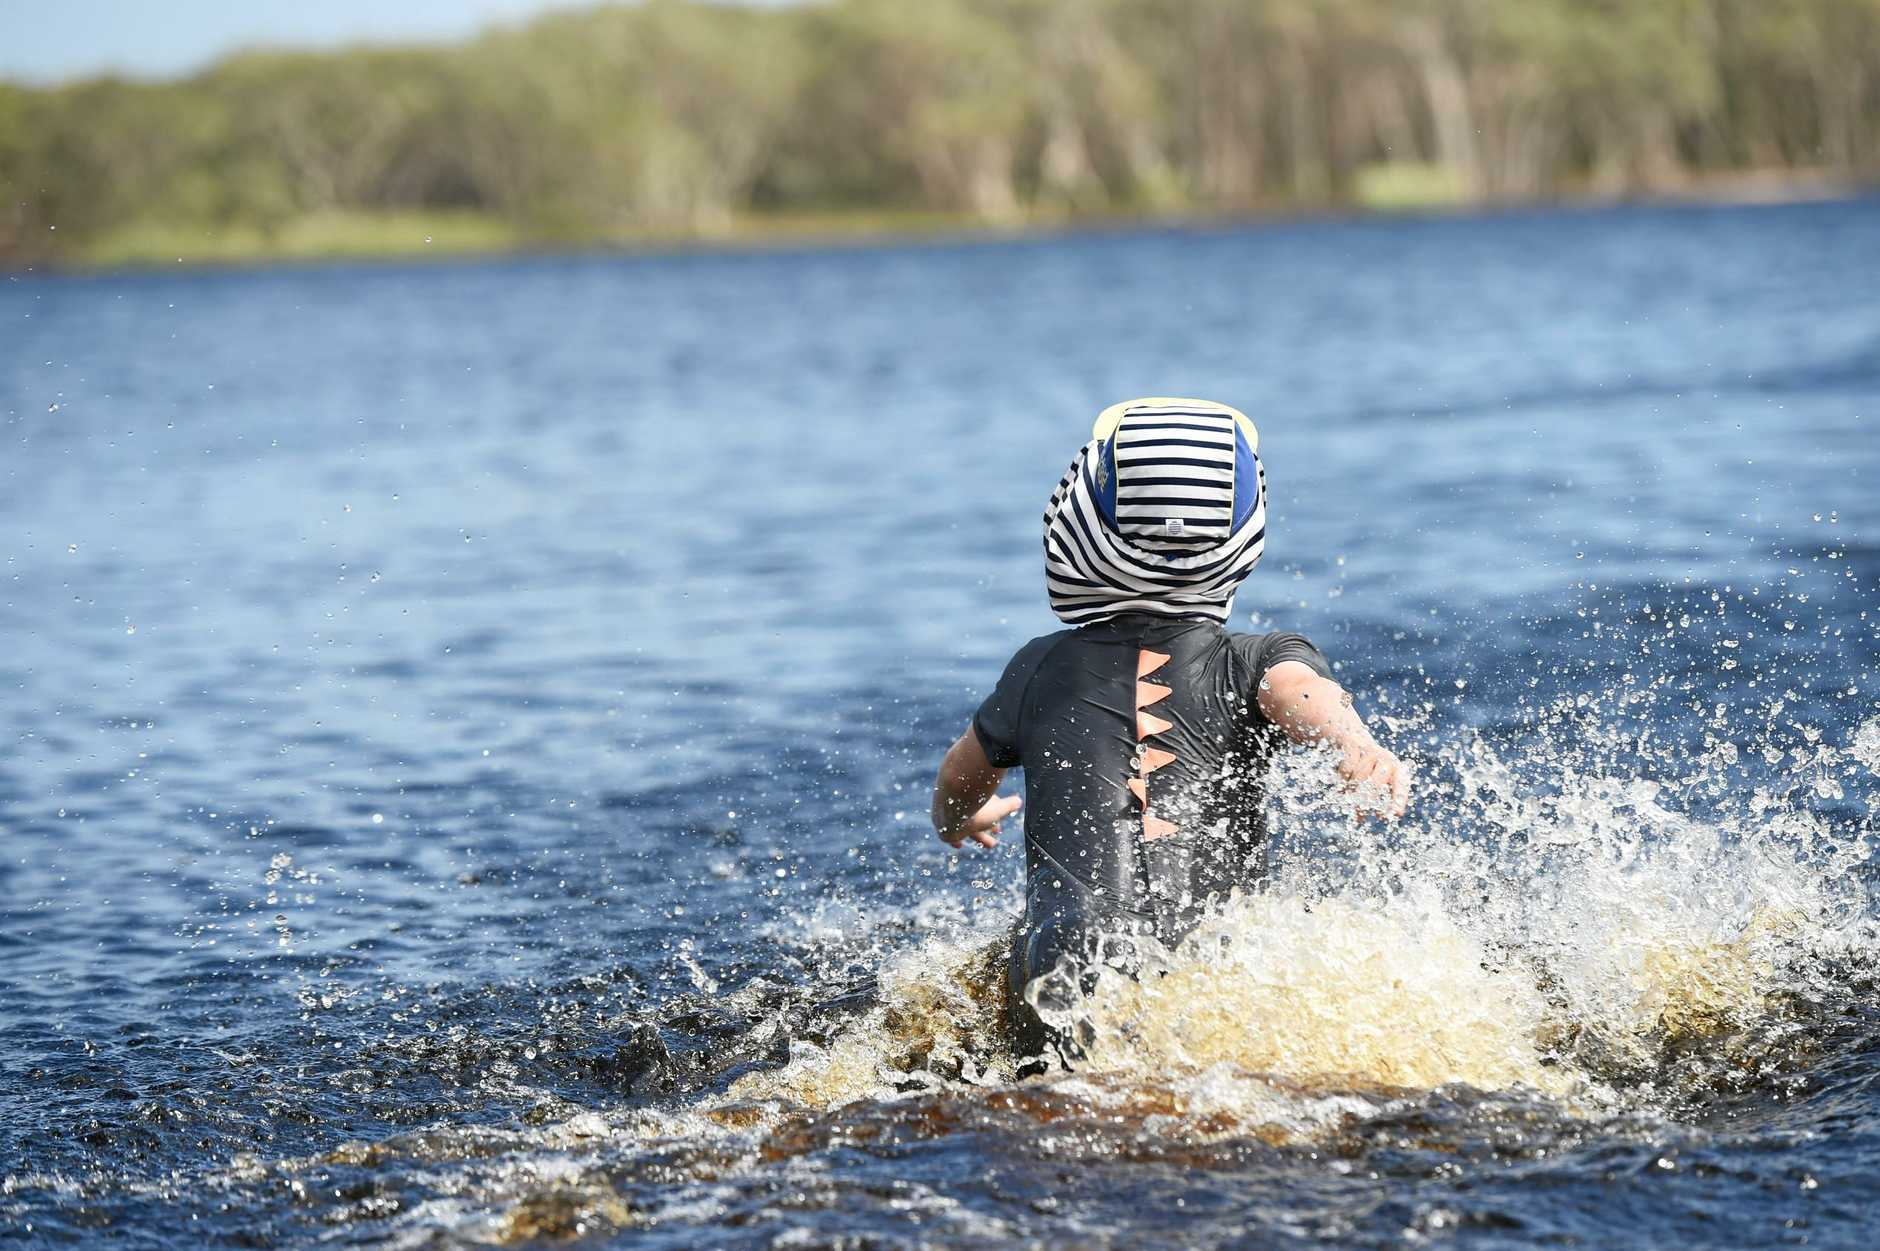 Water quality at three sections of recreation spot Lake Ainsworth has been found to be poor in a NSW Government water health report.